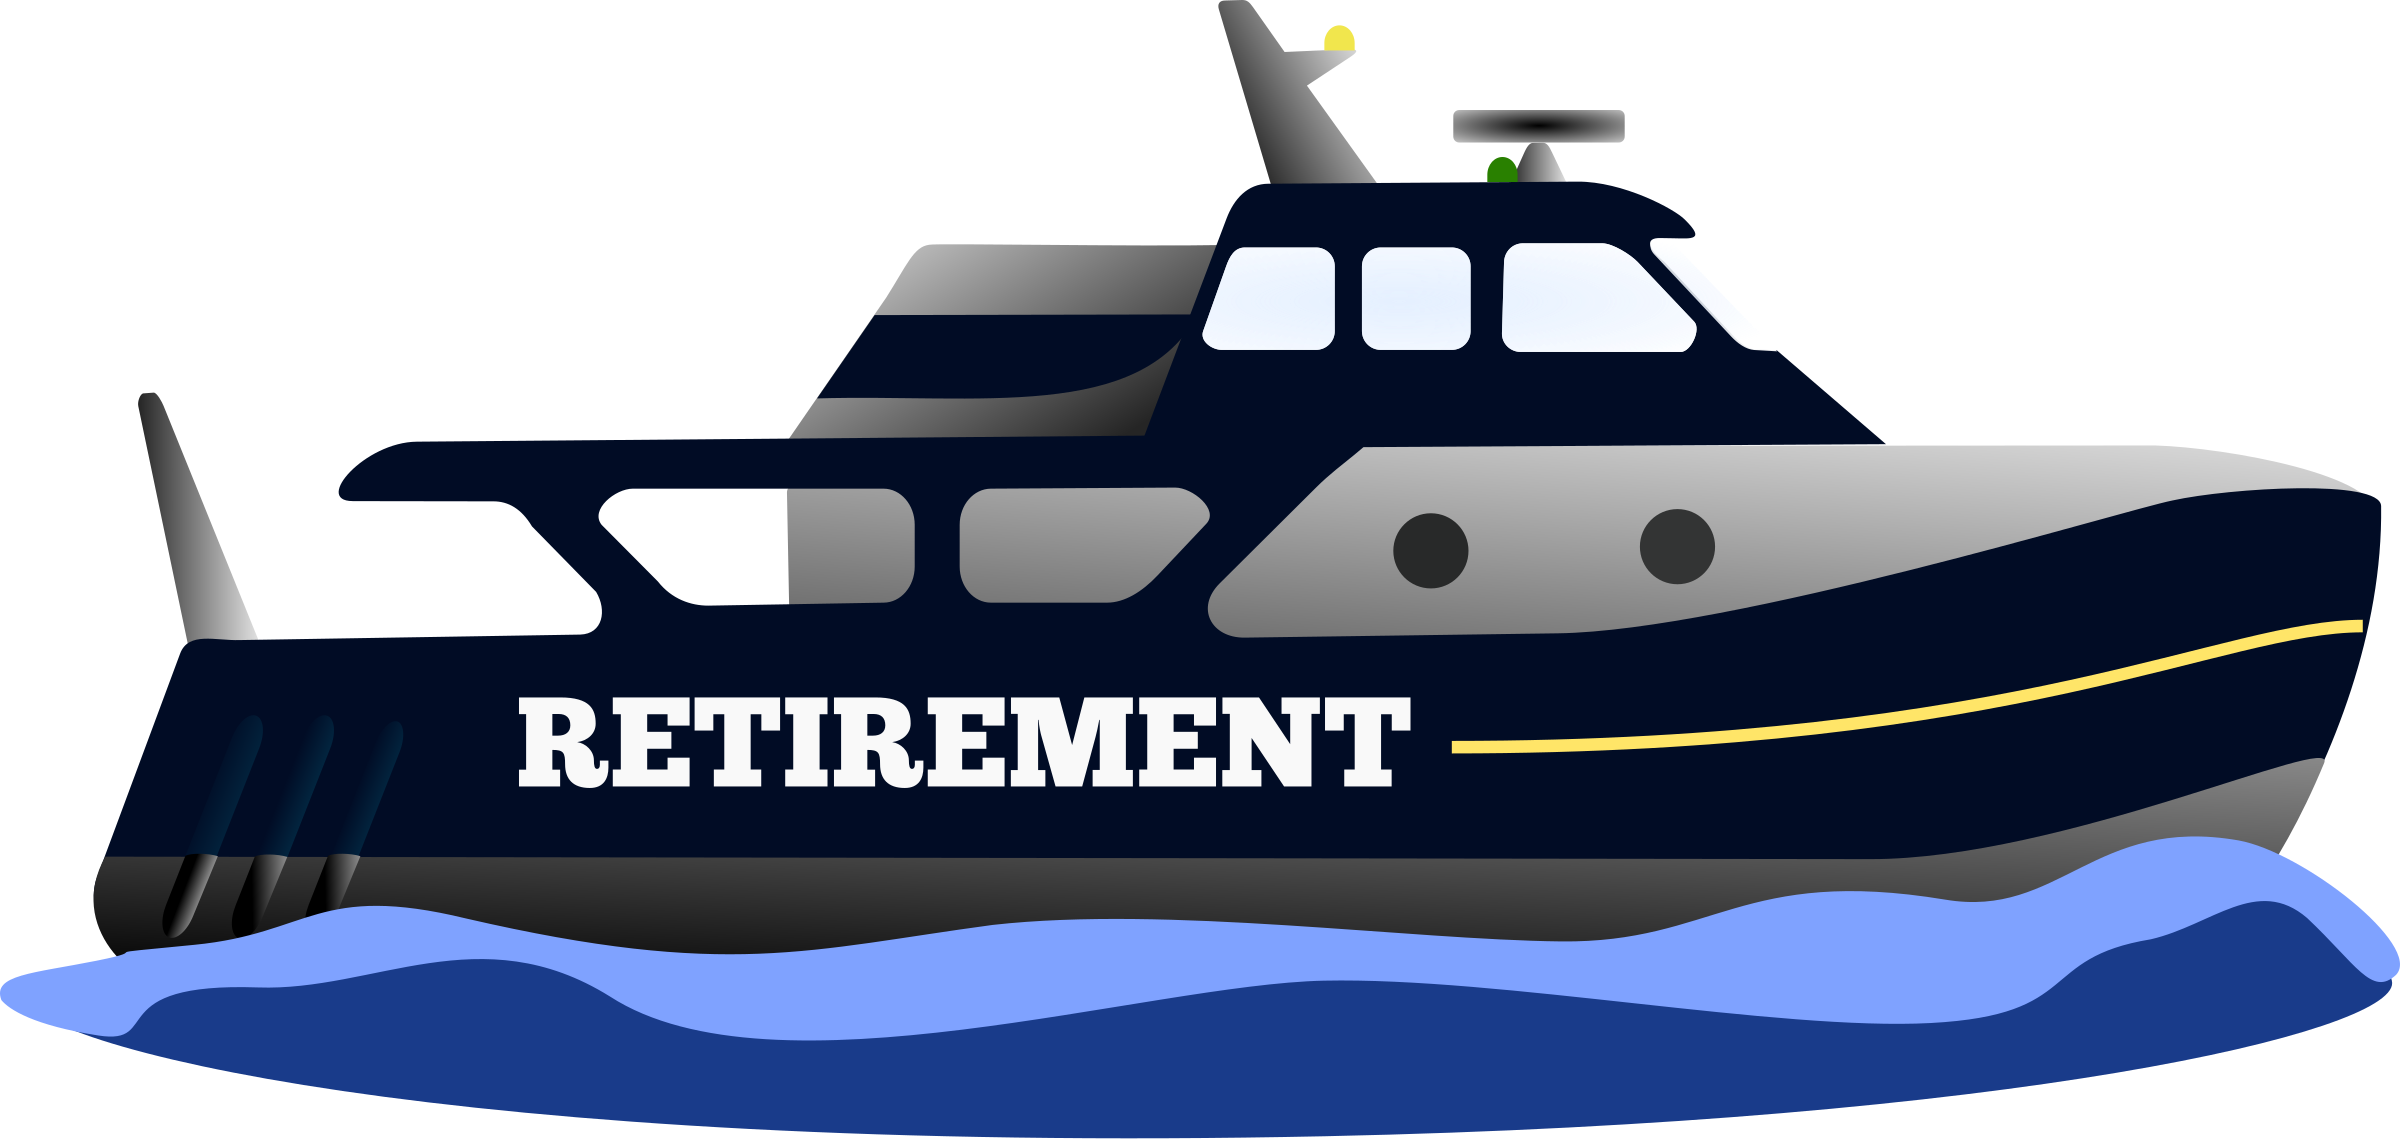 Retirement by Alastair